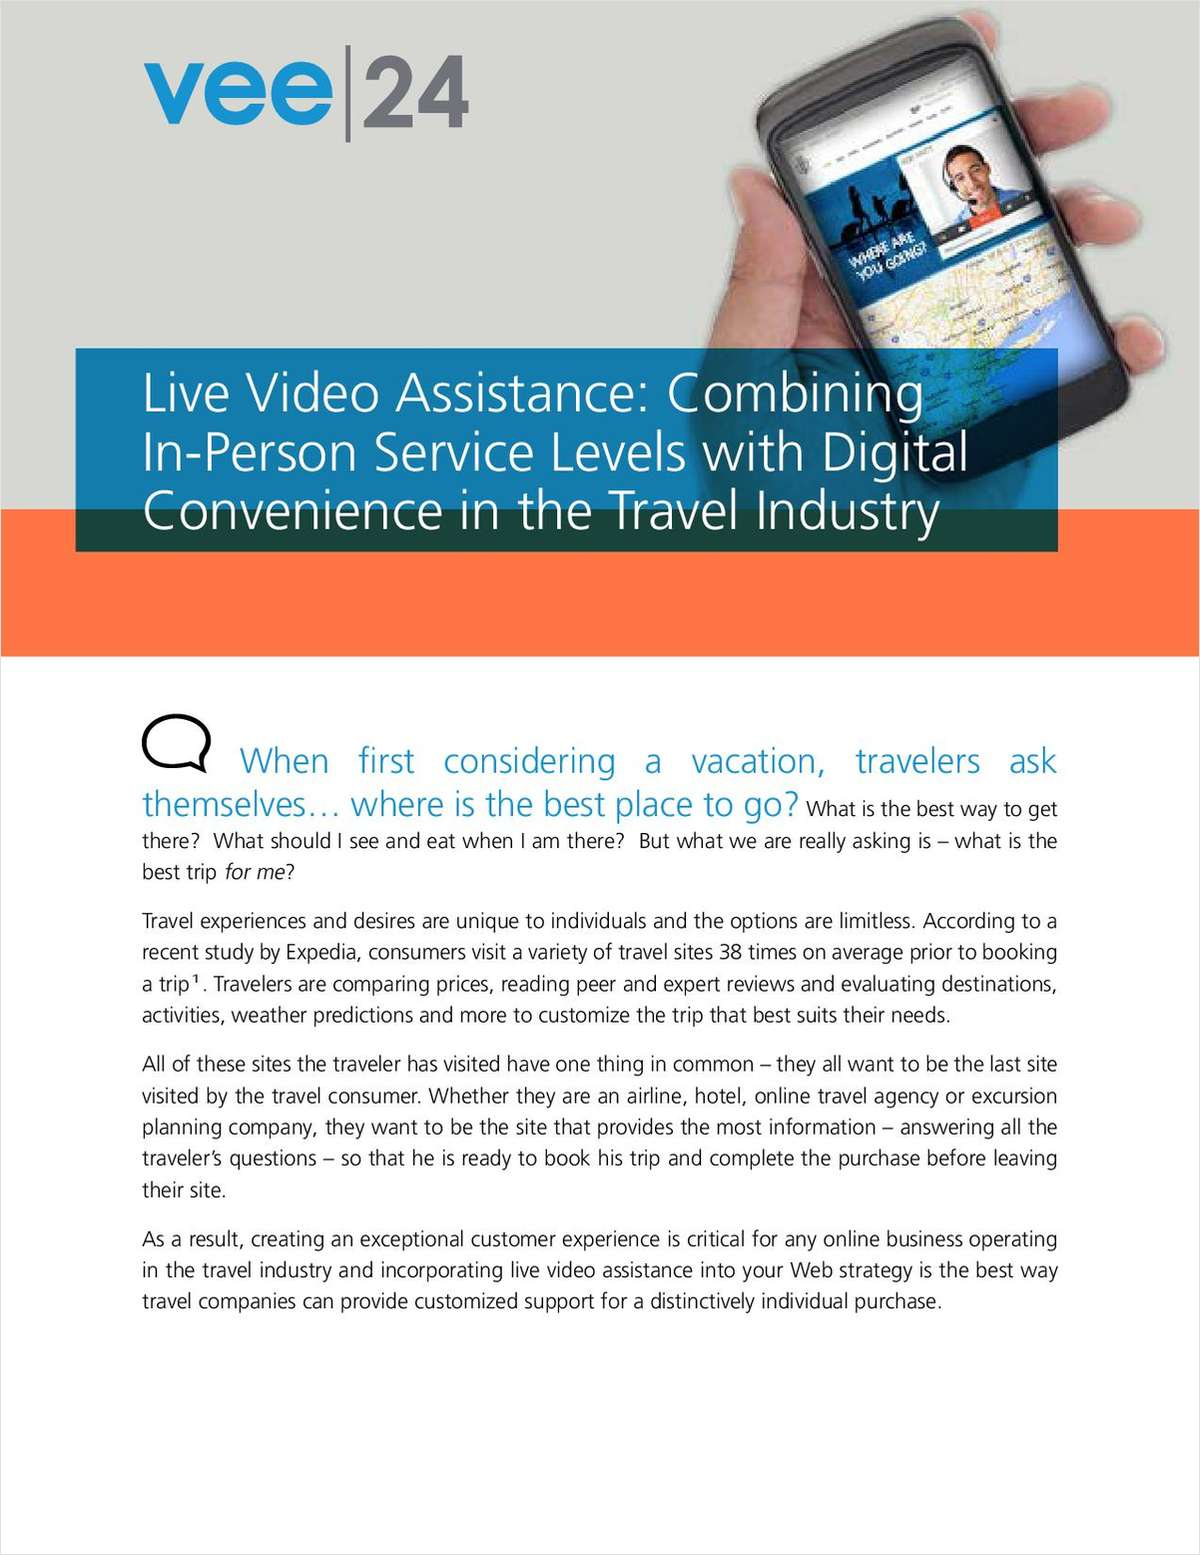 Live Video Assistance: Combining In-Person Service Levels with Digital Convenience in the Travel Industry